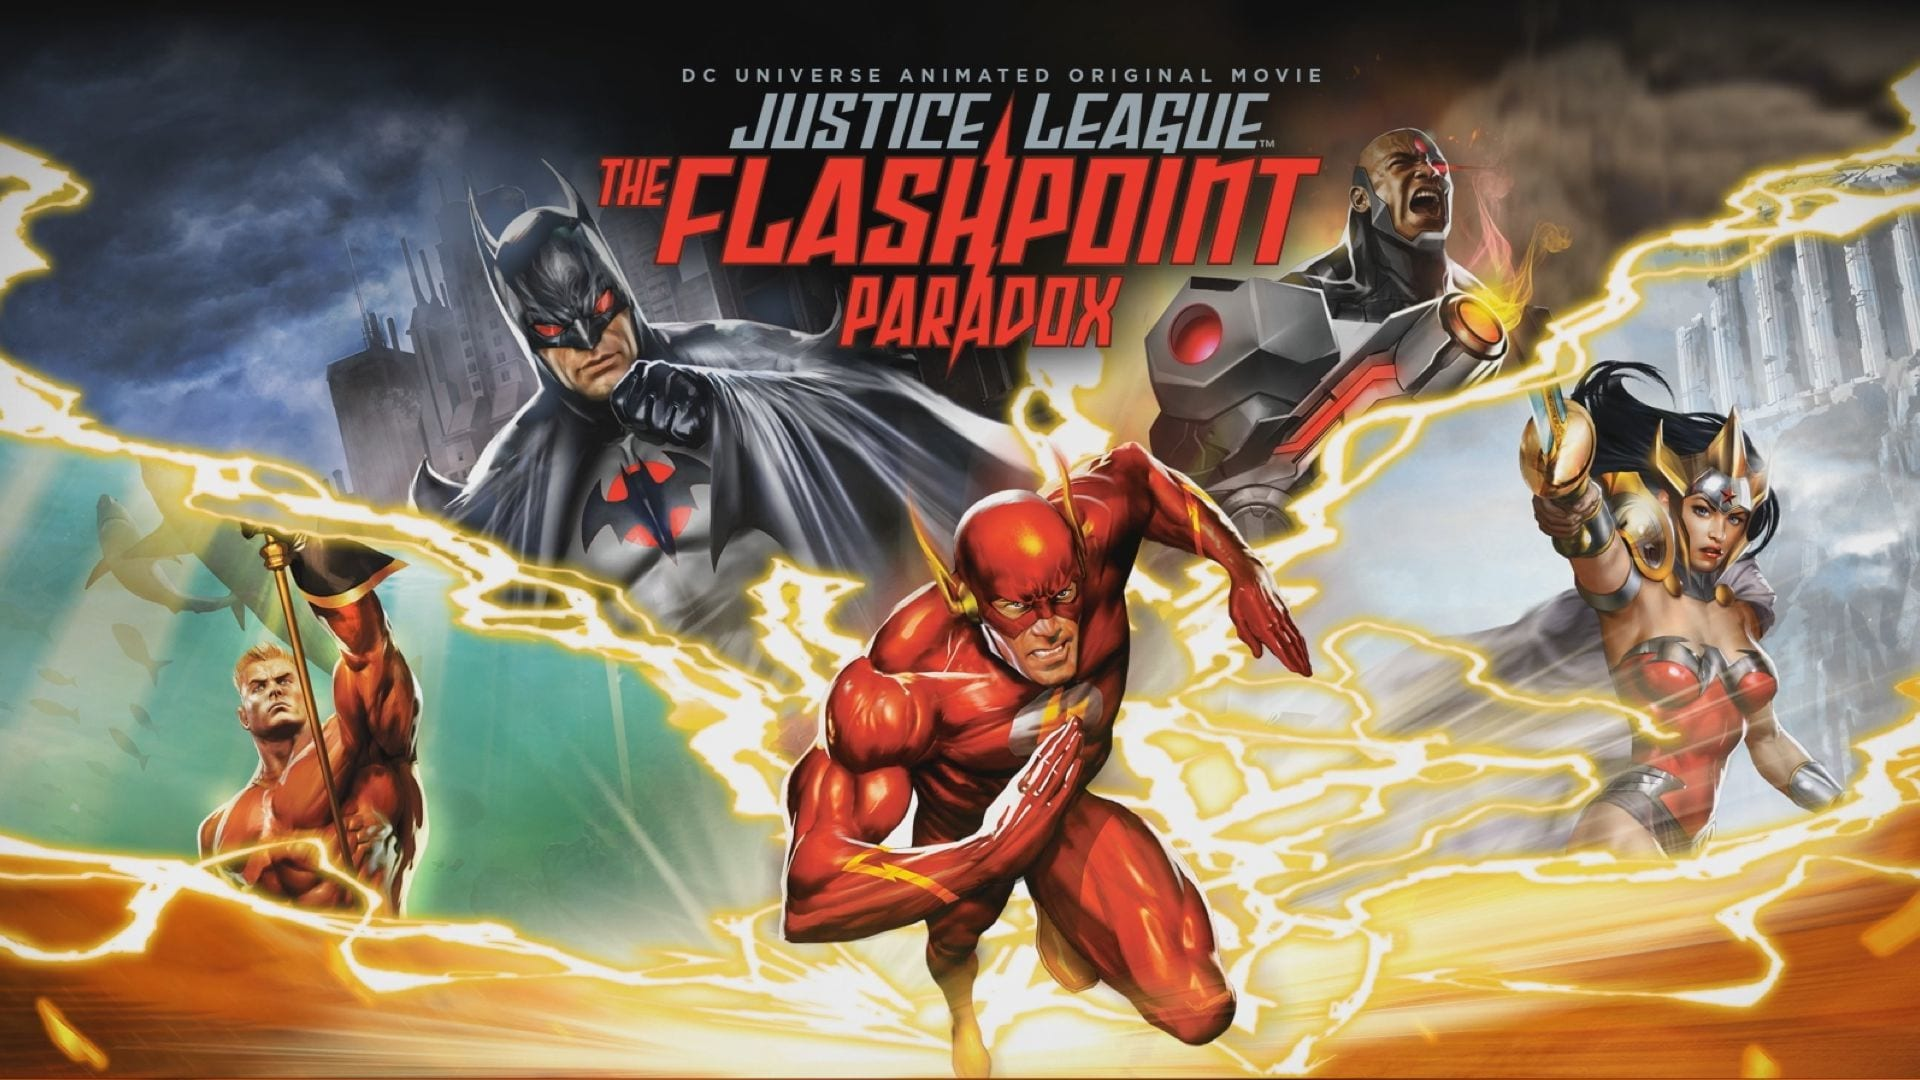 Flash Movie or Flashpoint Paradox Trailer and Release Date